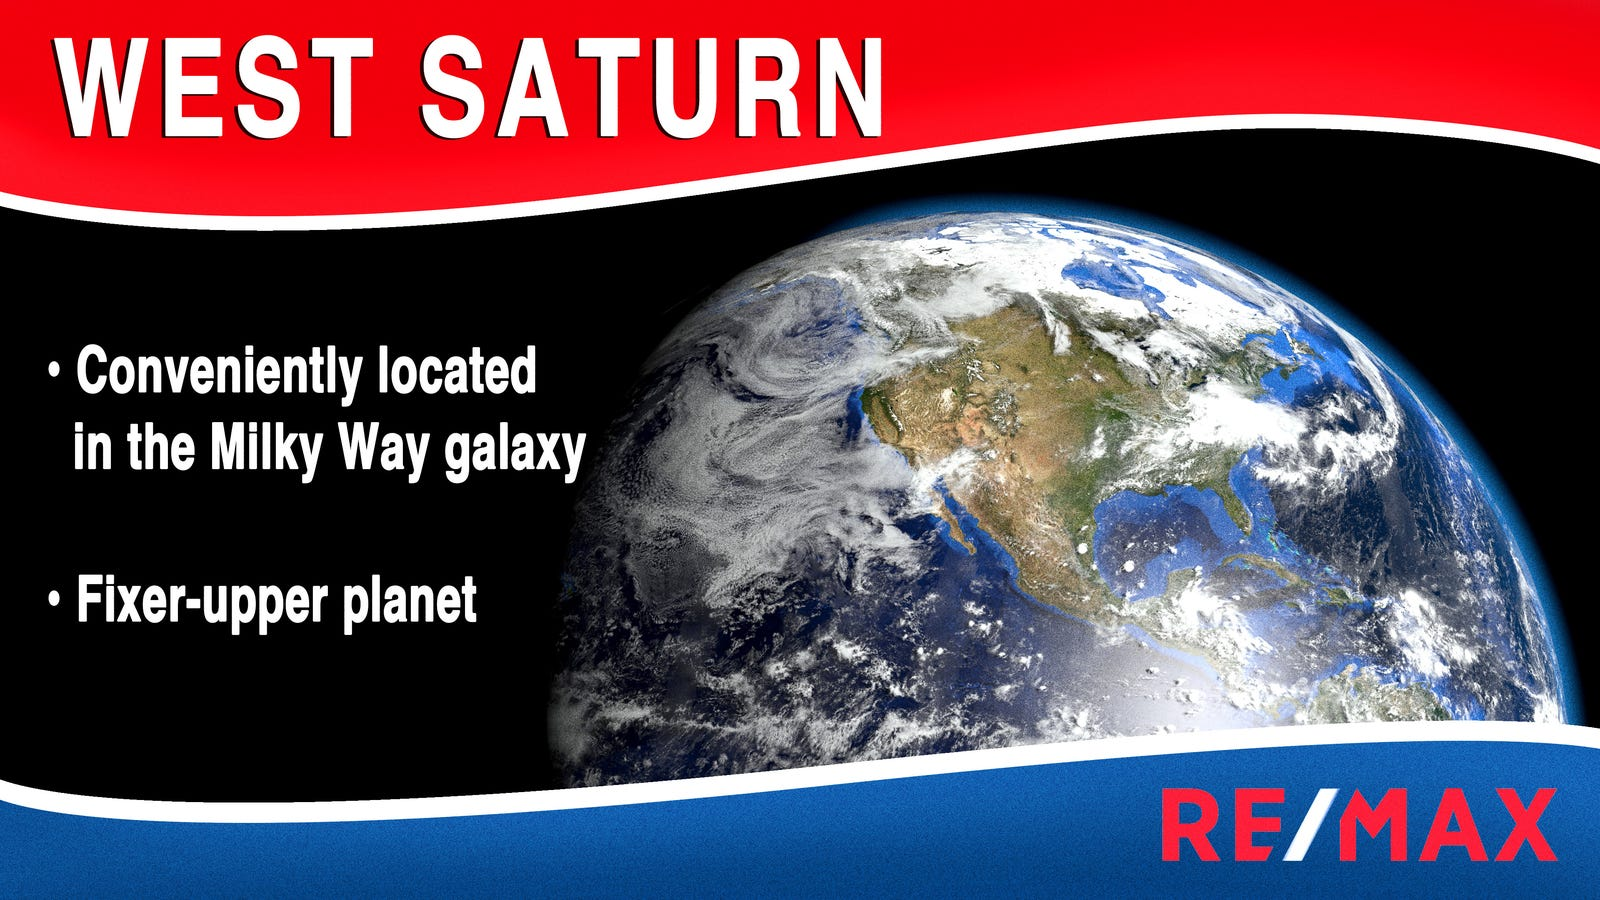 Real Estate Agents Trying To Gentrify Run-Down Earth By Renaming It West Saturn